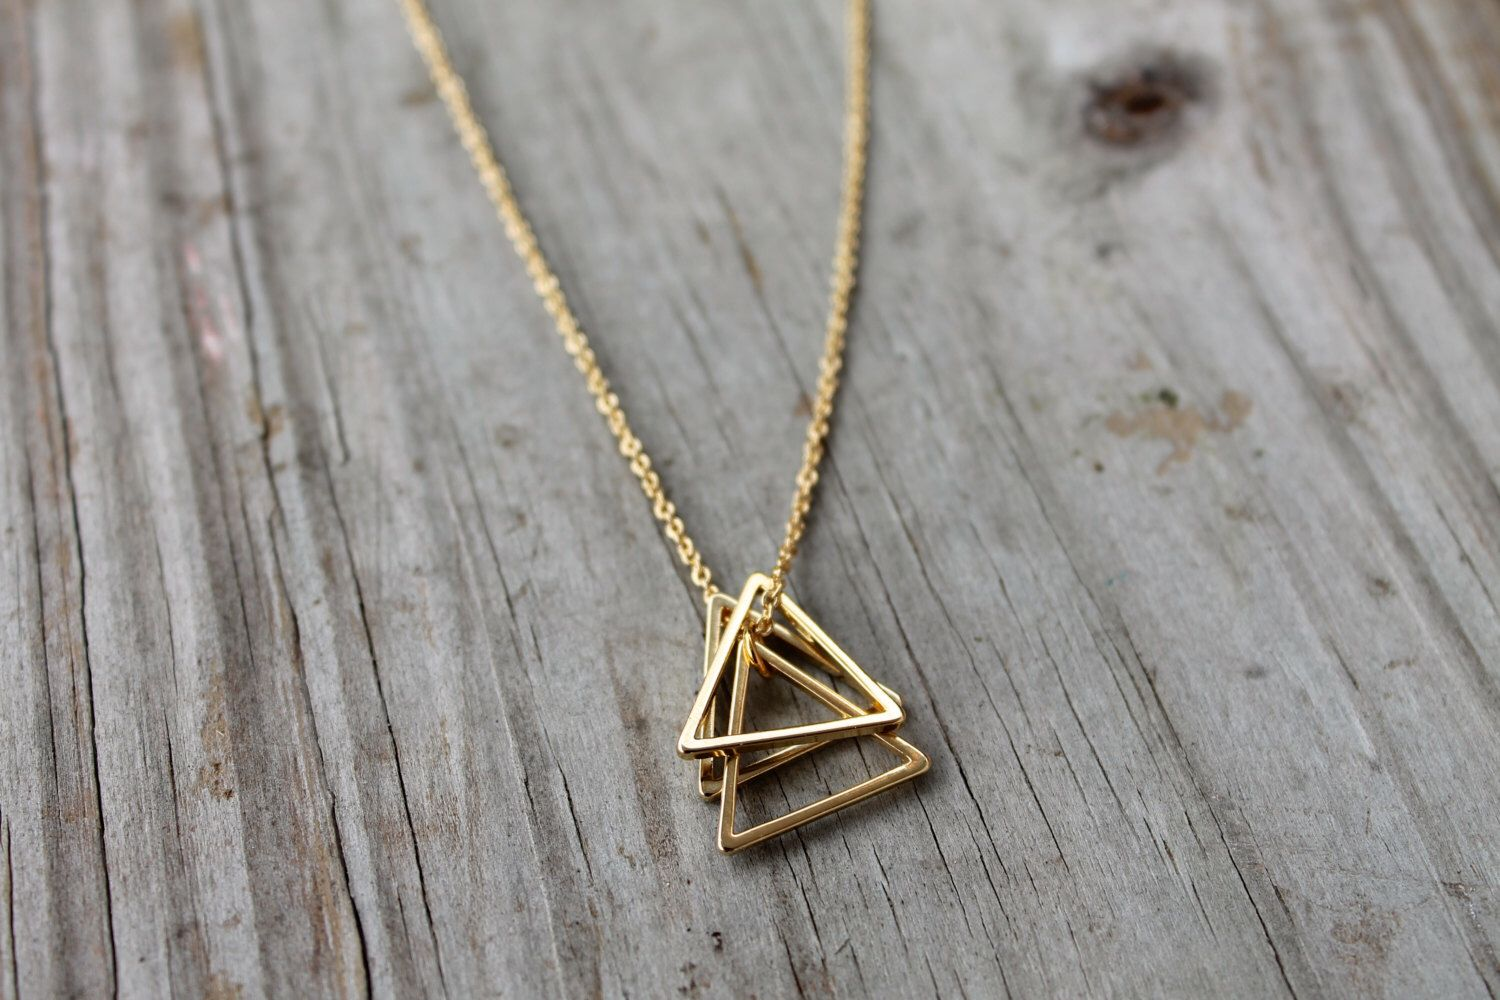 Gold Triangle Stack Necklace 14k Gold Filled Triangle Etsy In 2020 Pendant Necklace Simple Geometric Pendant Necklace Stacked Necklaces